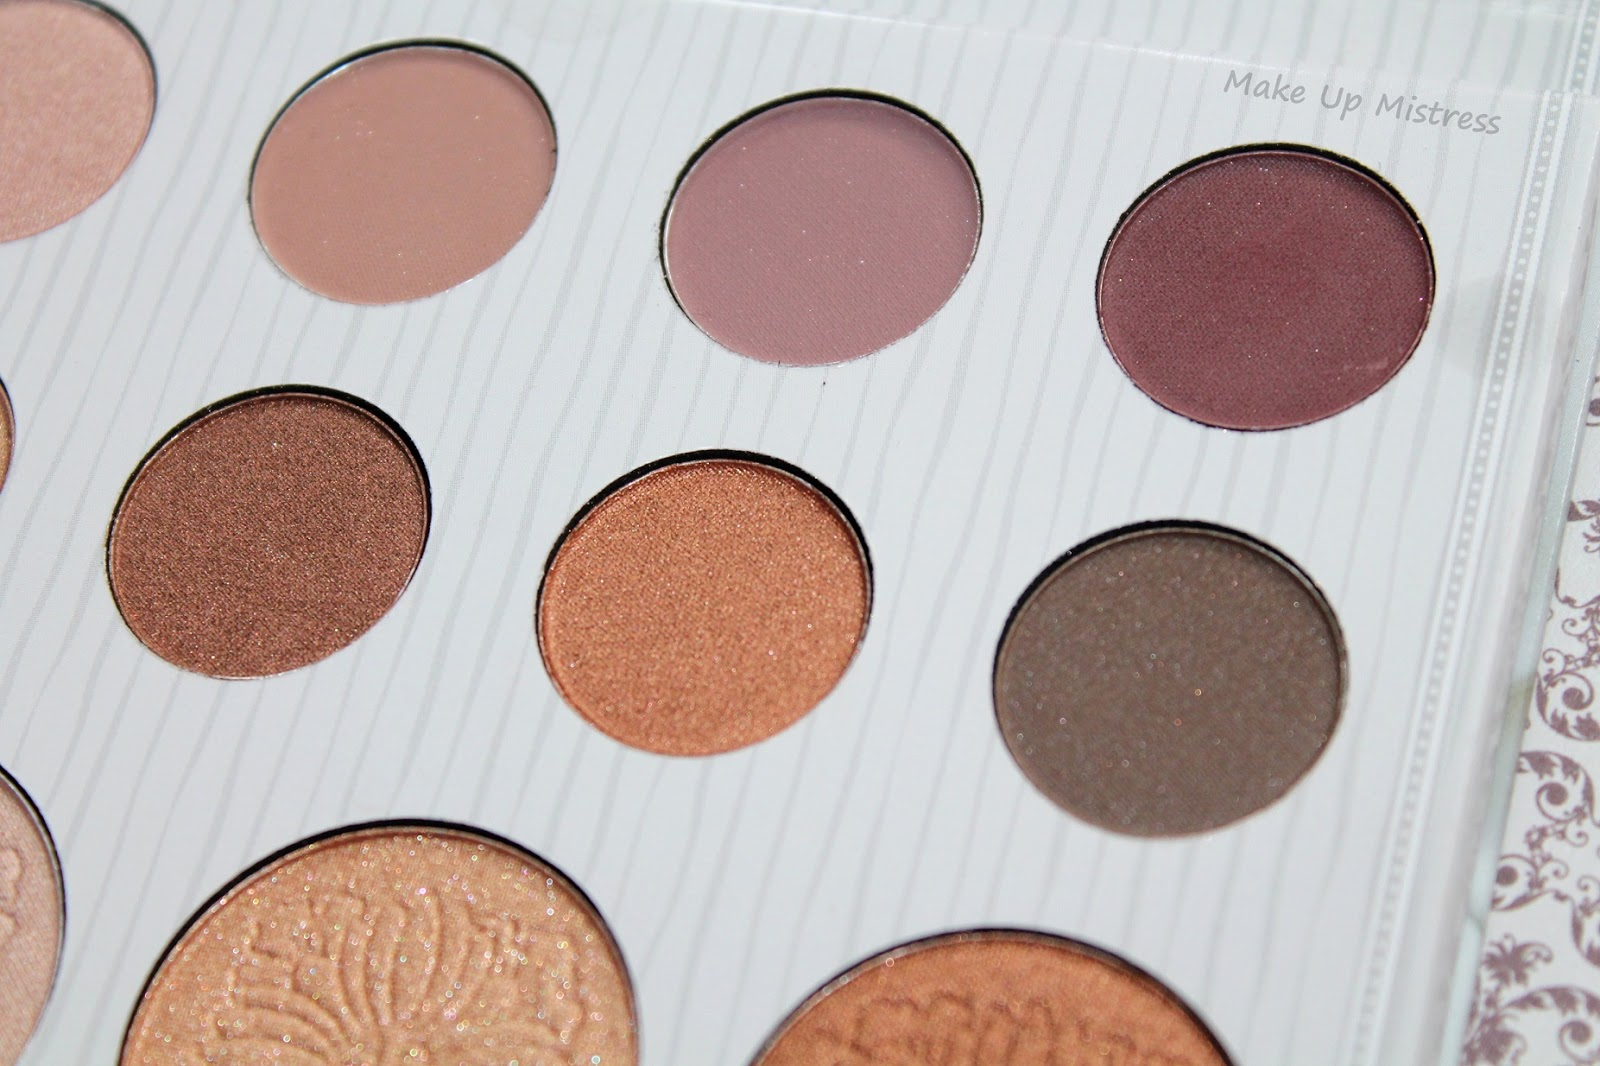 Make up mistress: carli bybel eyeshadow palette